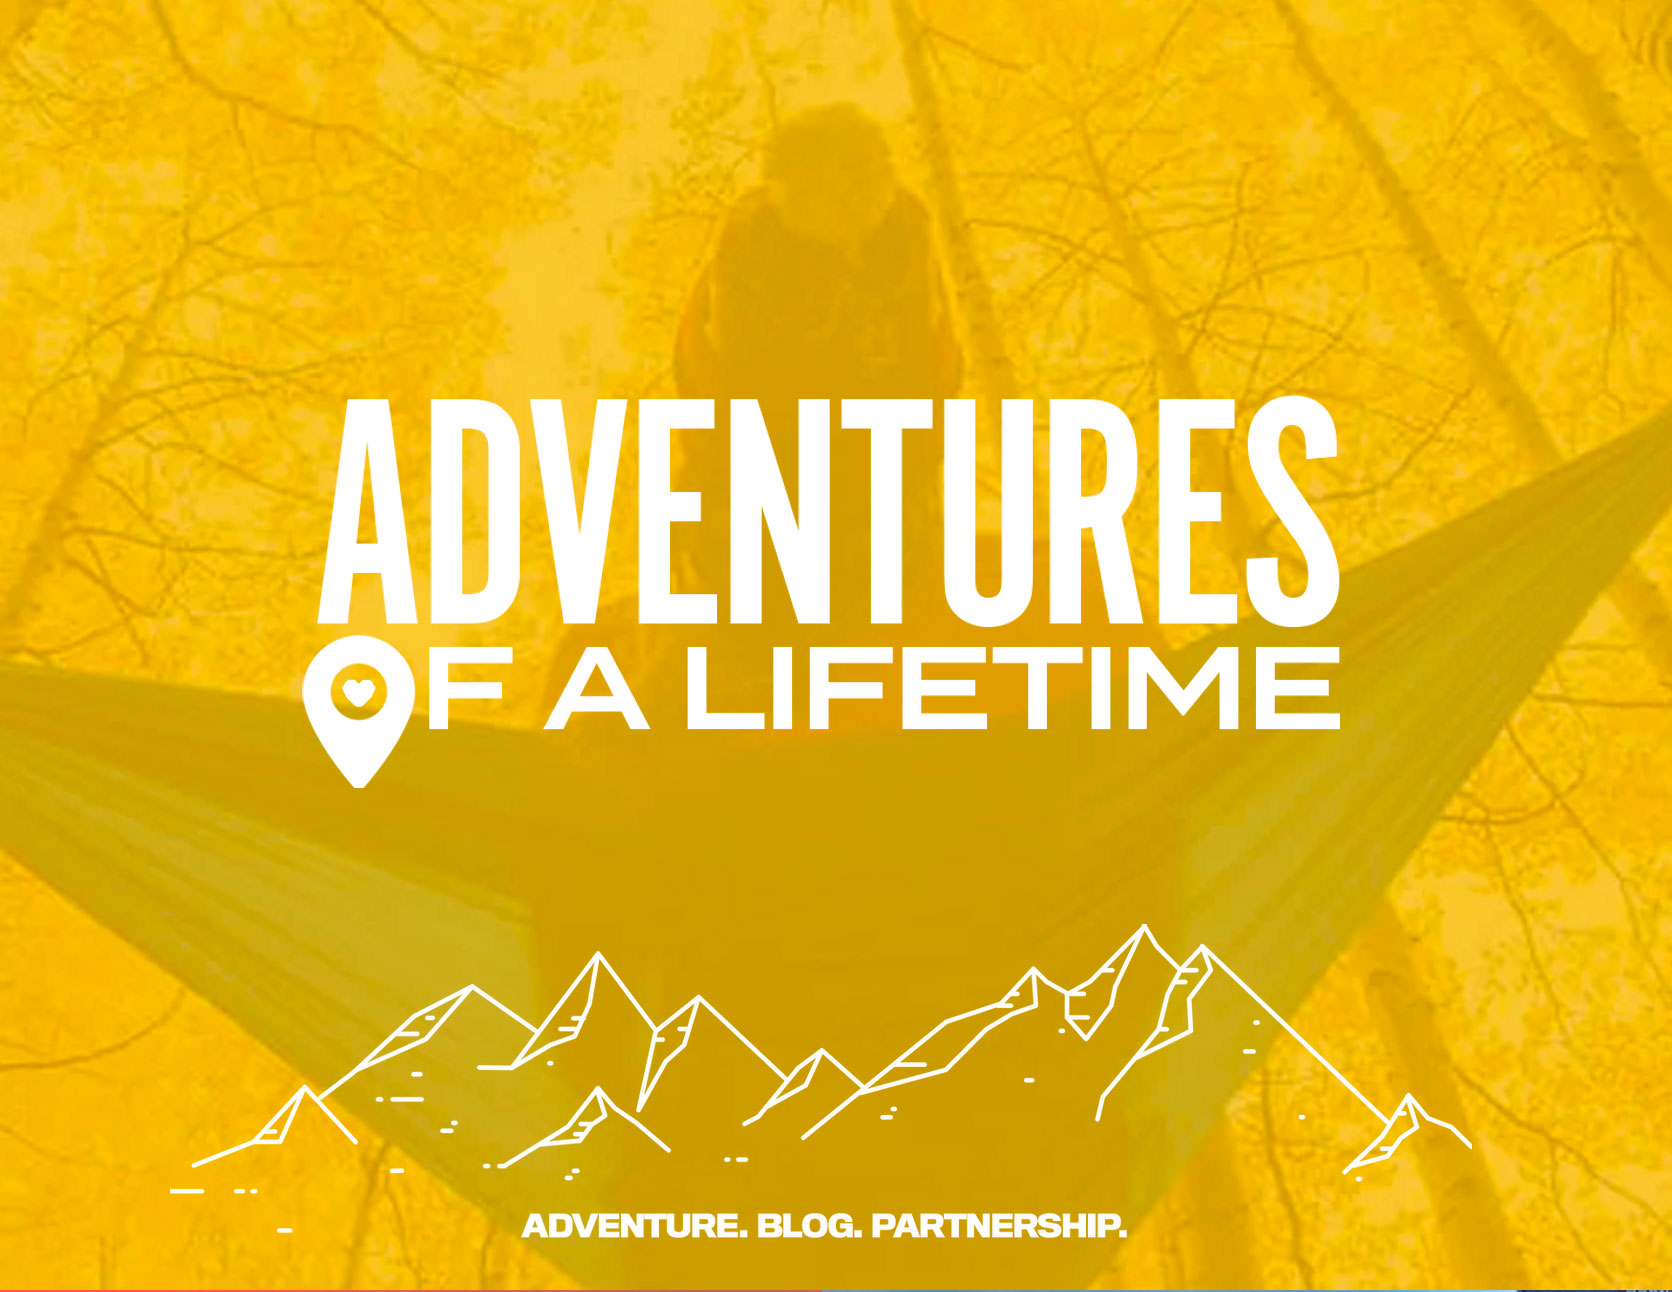 adventures_of_a_lifetime